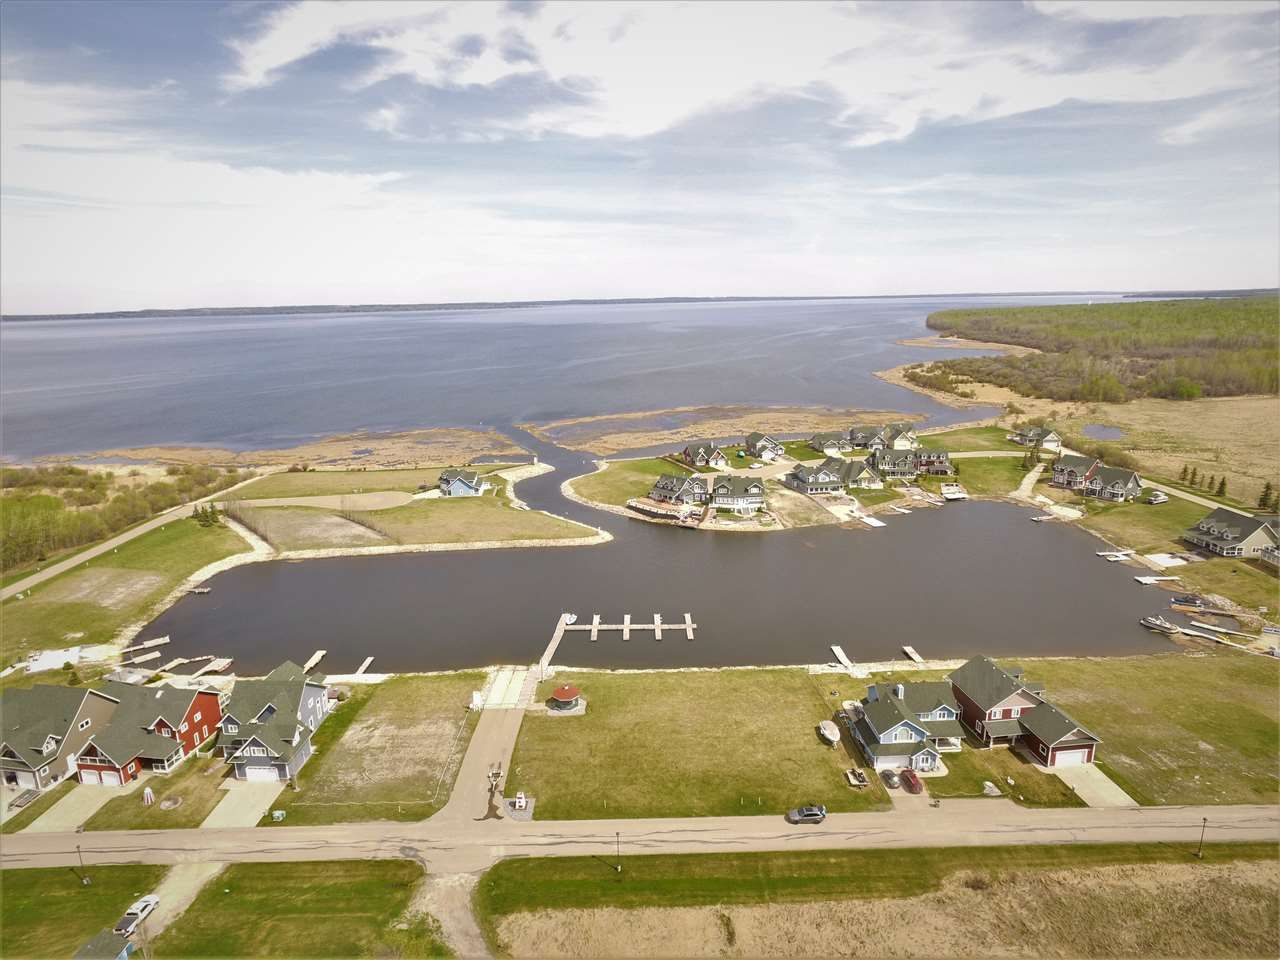 Main Photo: #12 Sunset Harbour: Rural Wetaskiwin County Rural Land/Vacant Lot for sale : MLS®# E4195639